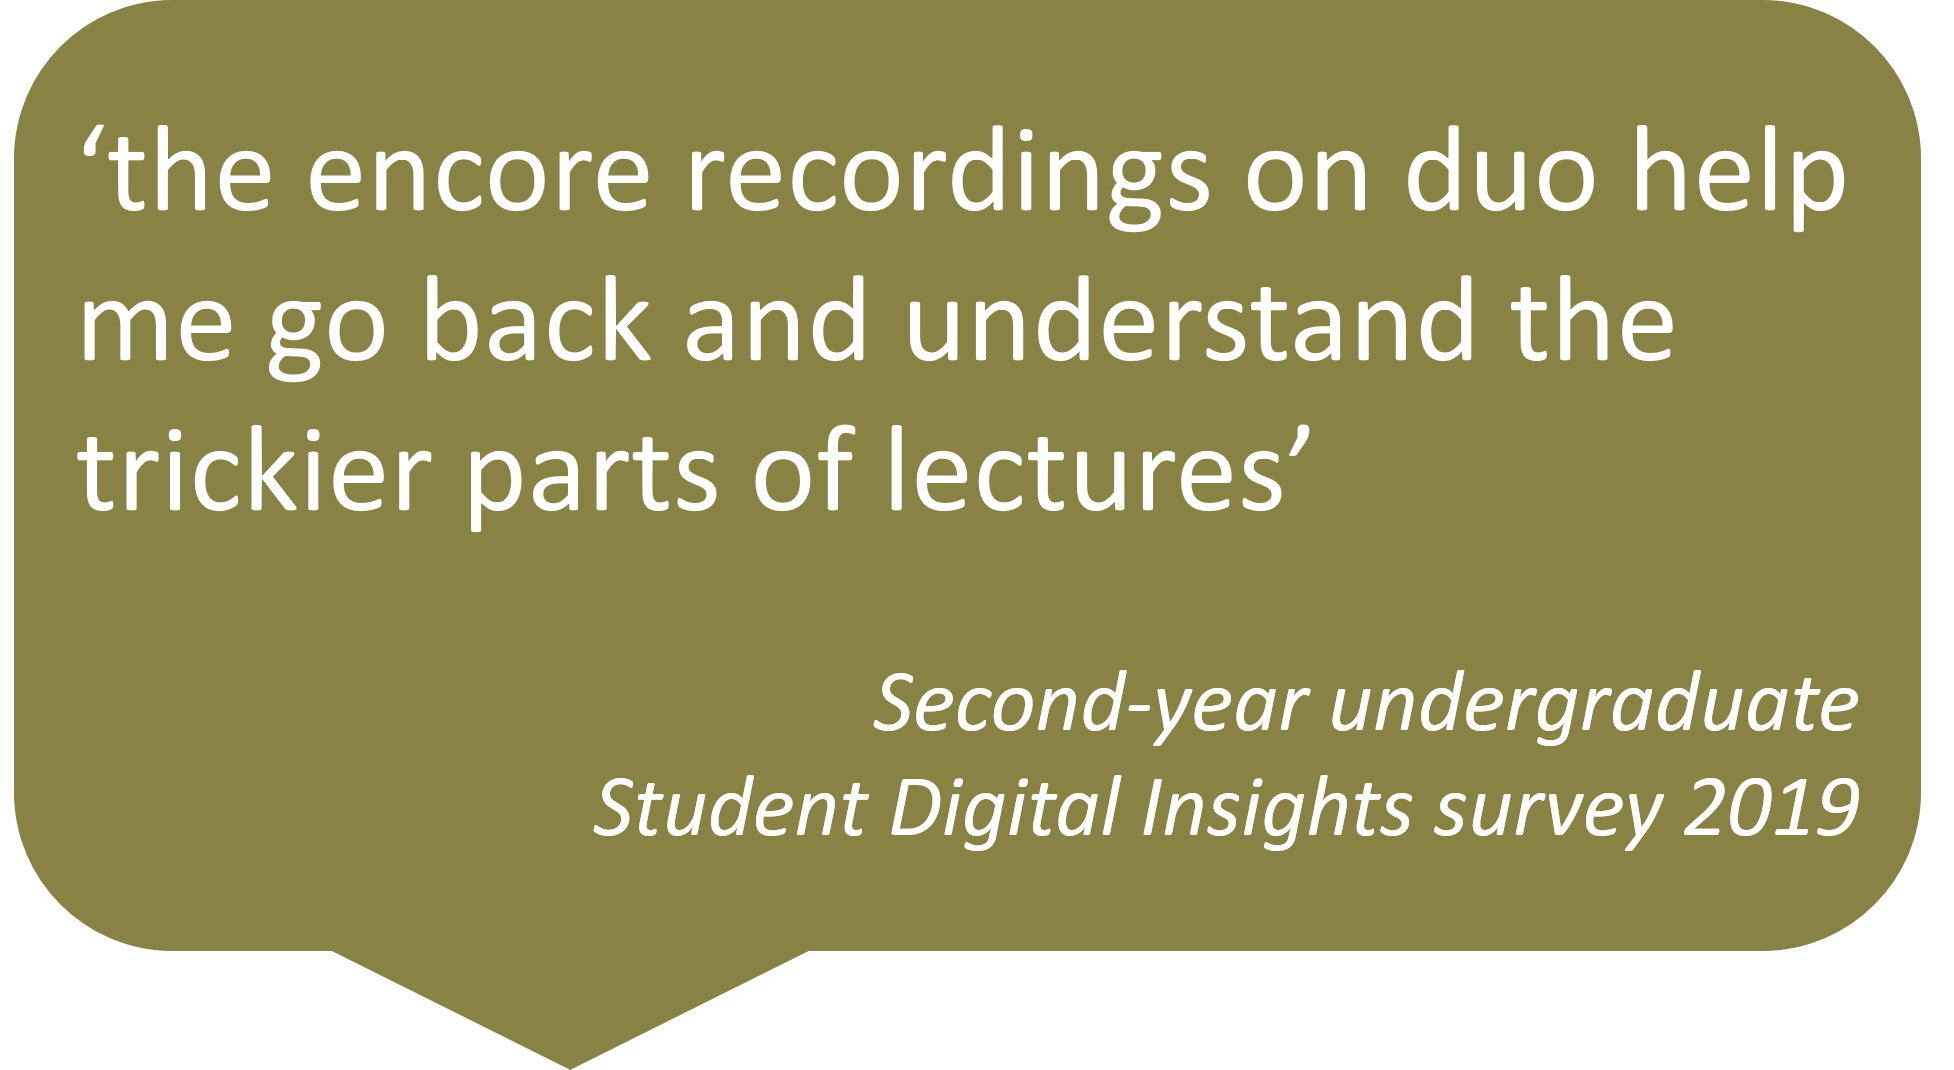 'the encore recordings on duo help me go back and understand the trickier parts of lectures'  Second-year undergraduate Student Digital Insights survey 2019